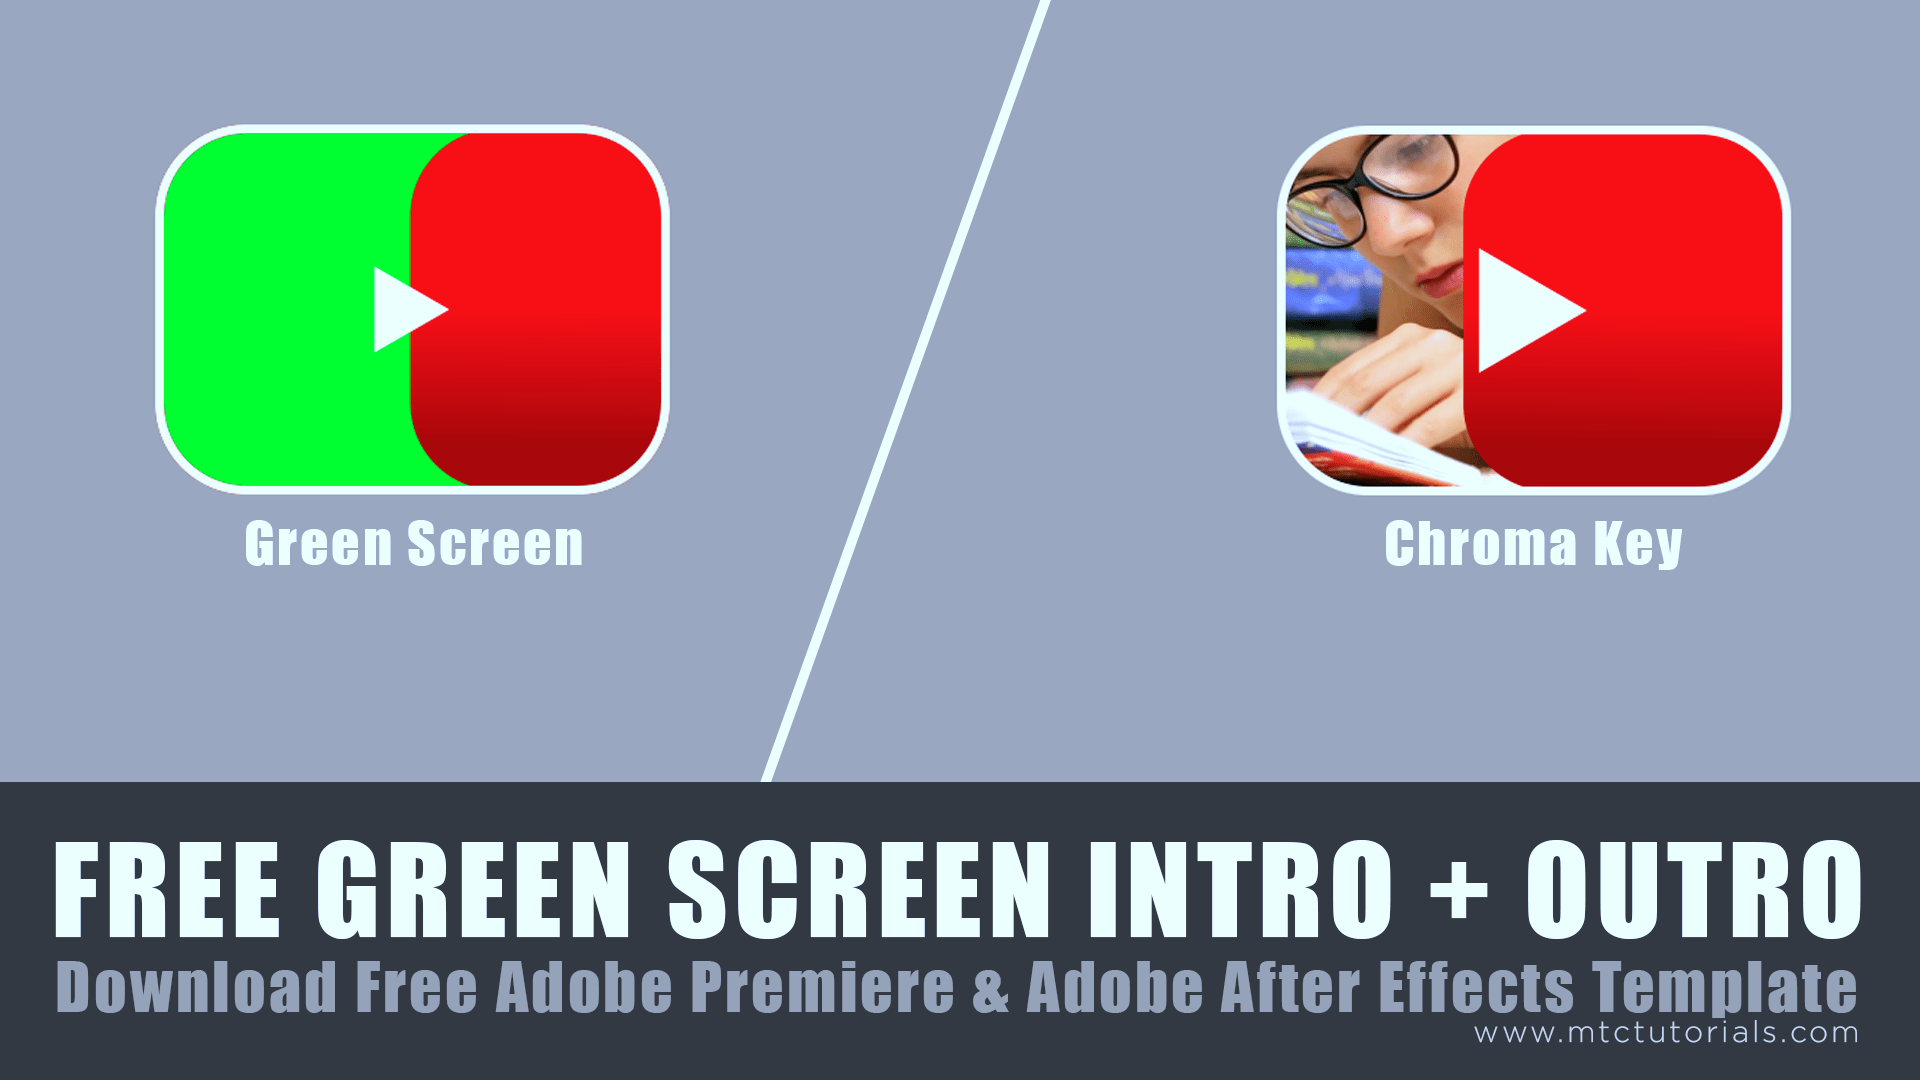 Download youtube intro green screen video, adobe after effects template and premiere template by mtc tutorials